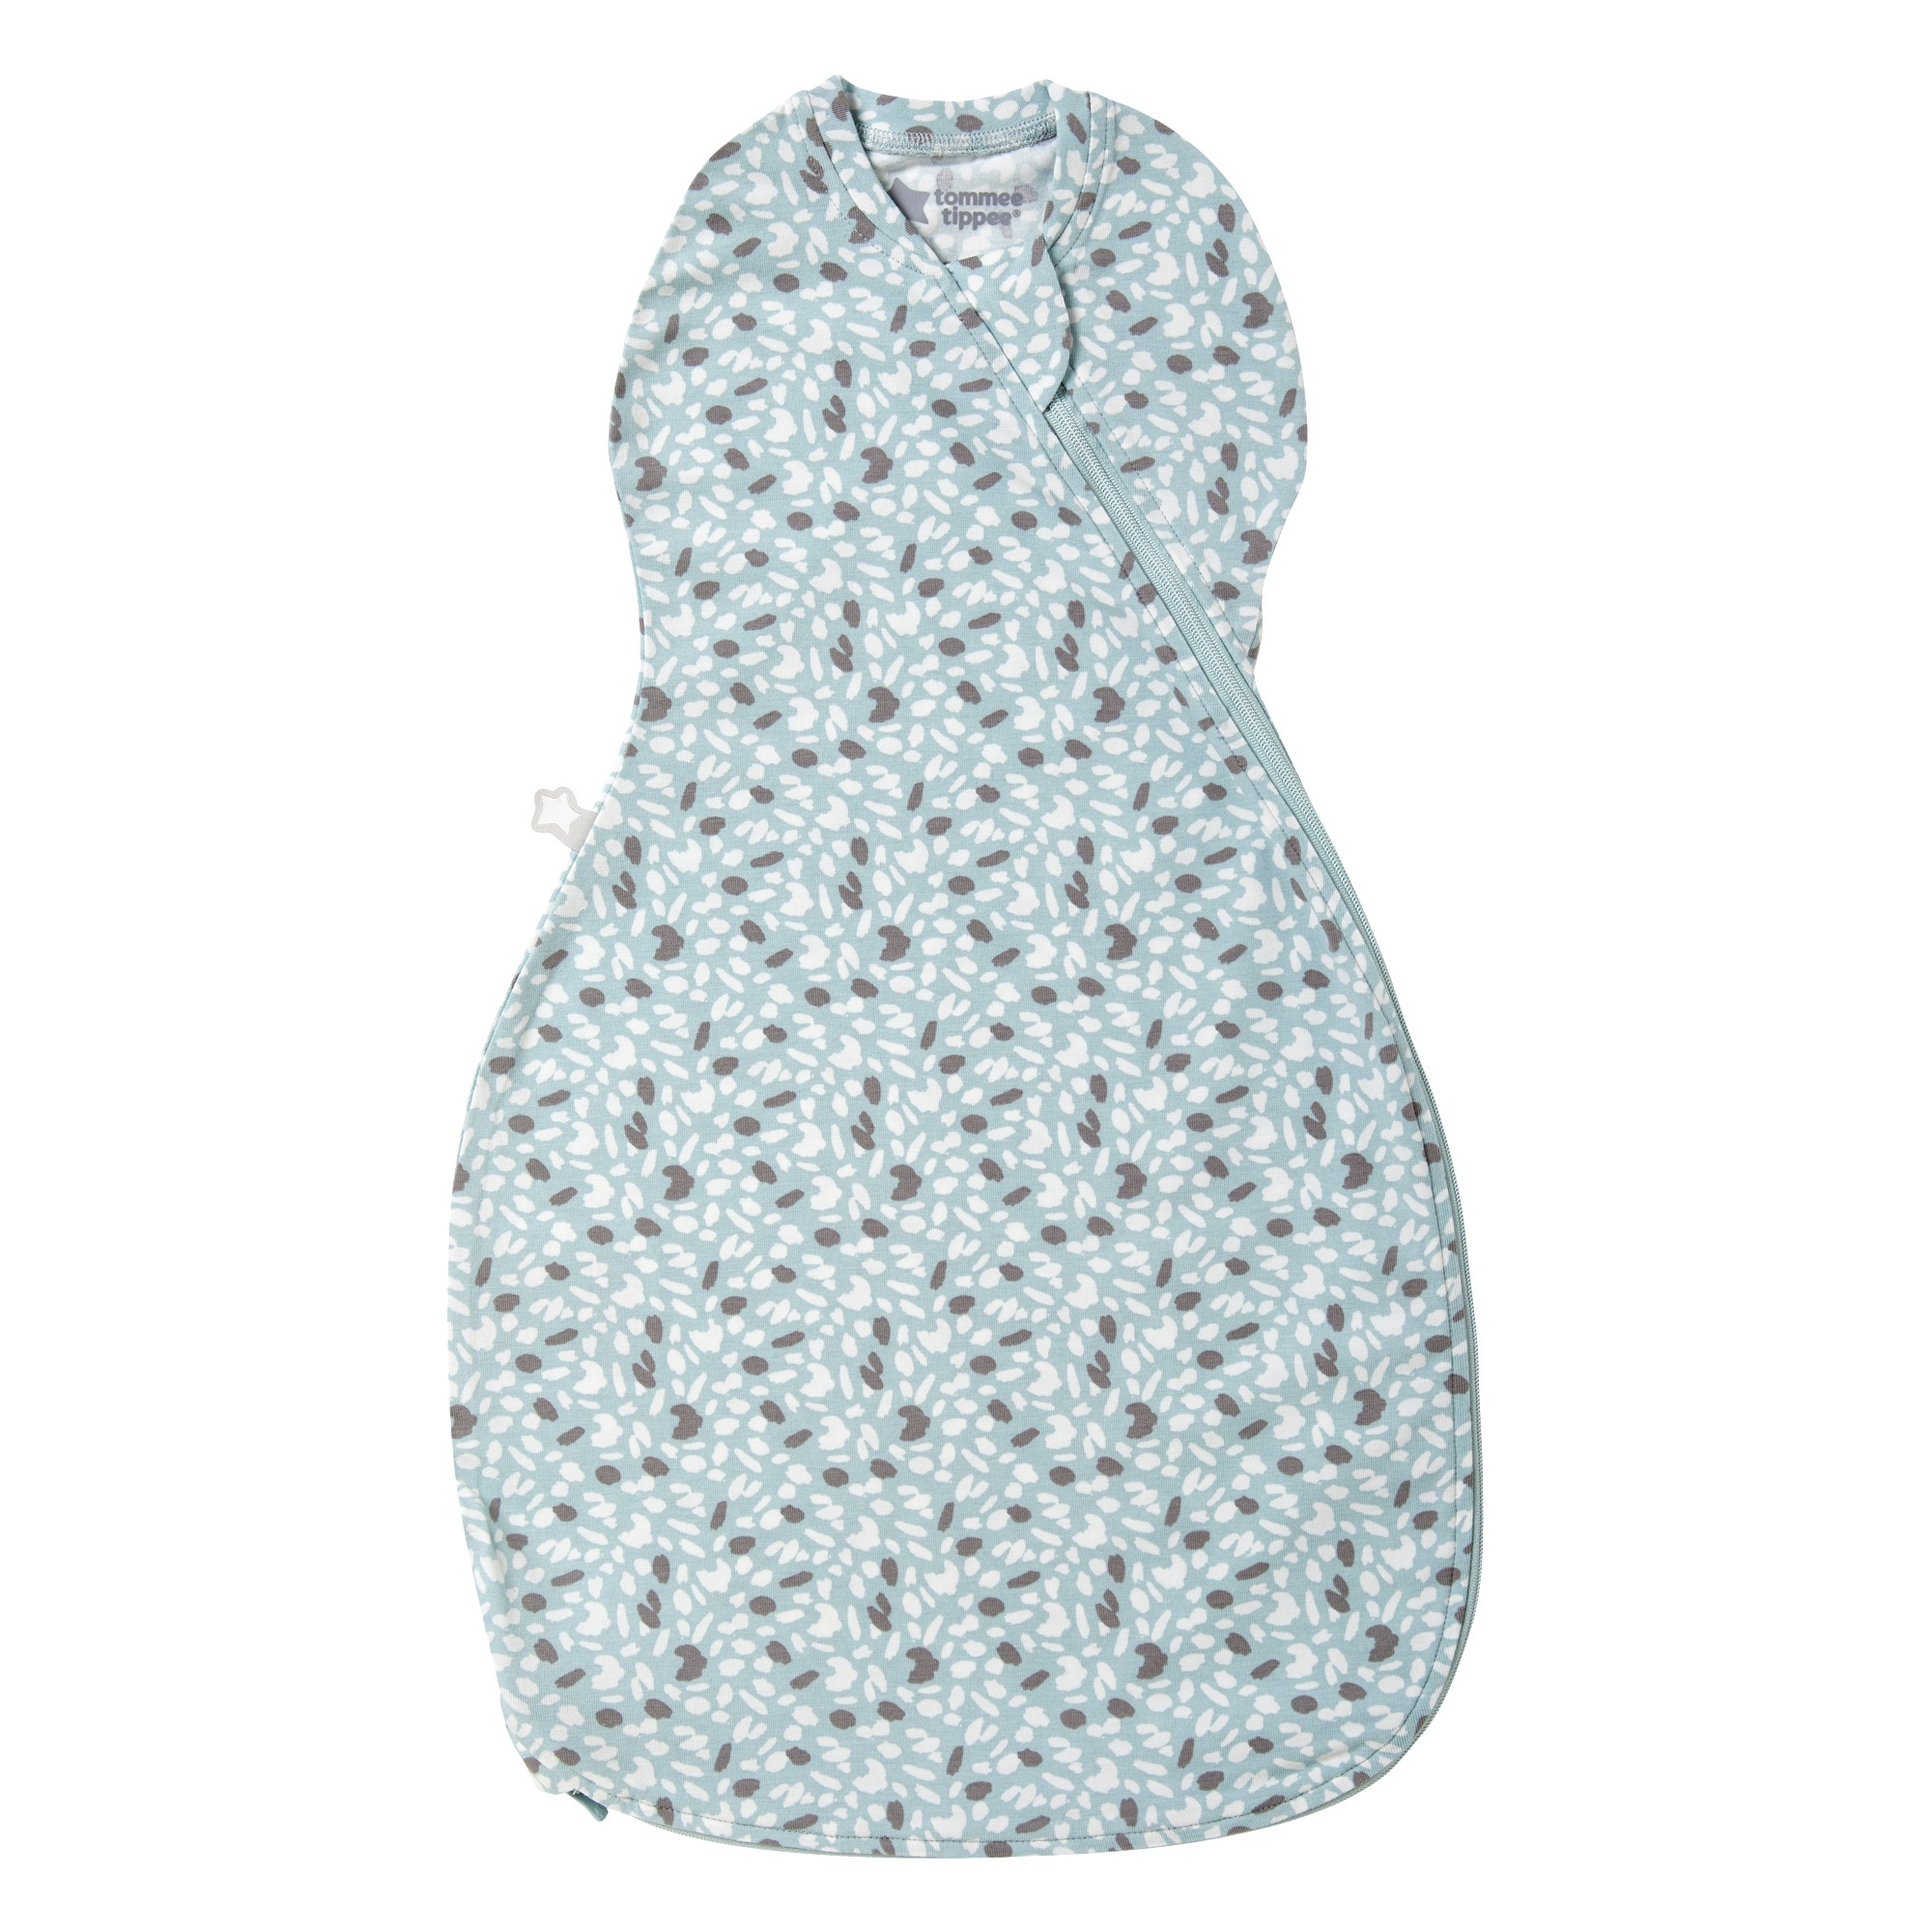 Gro easy swaddle - Earth blue